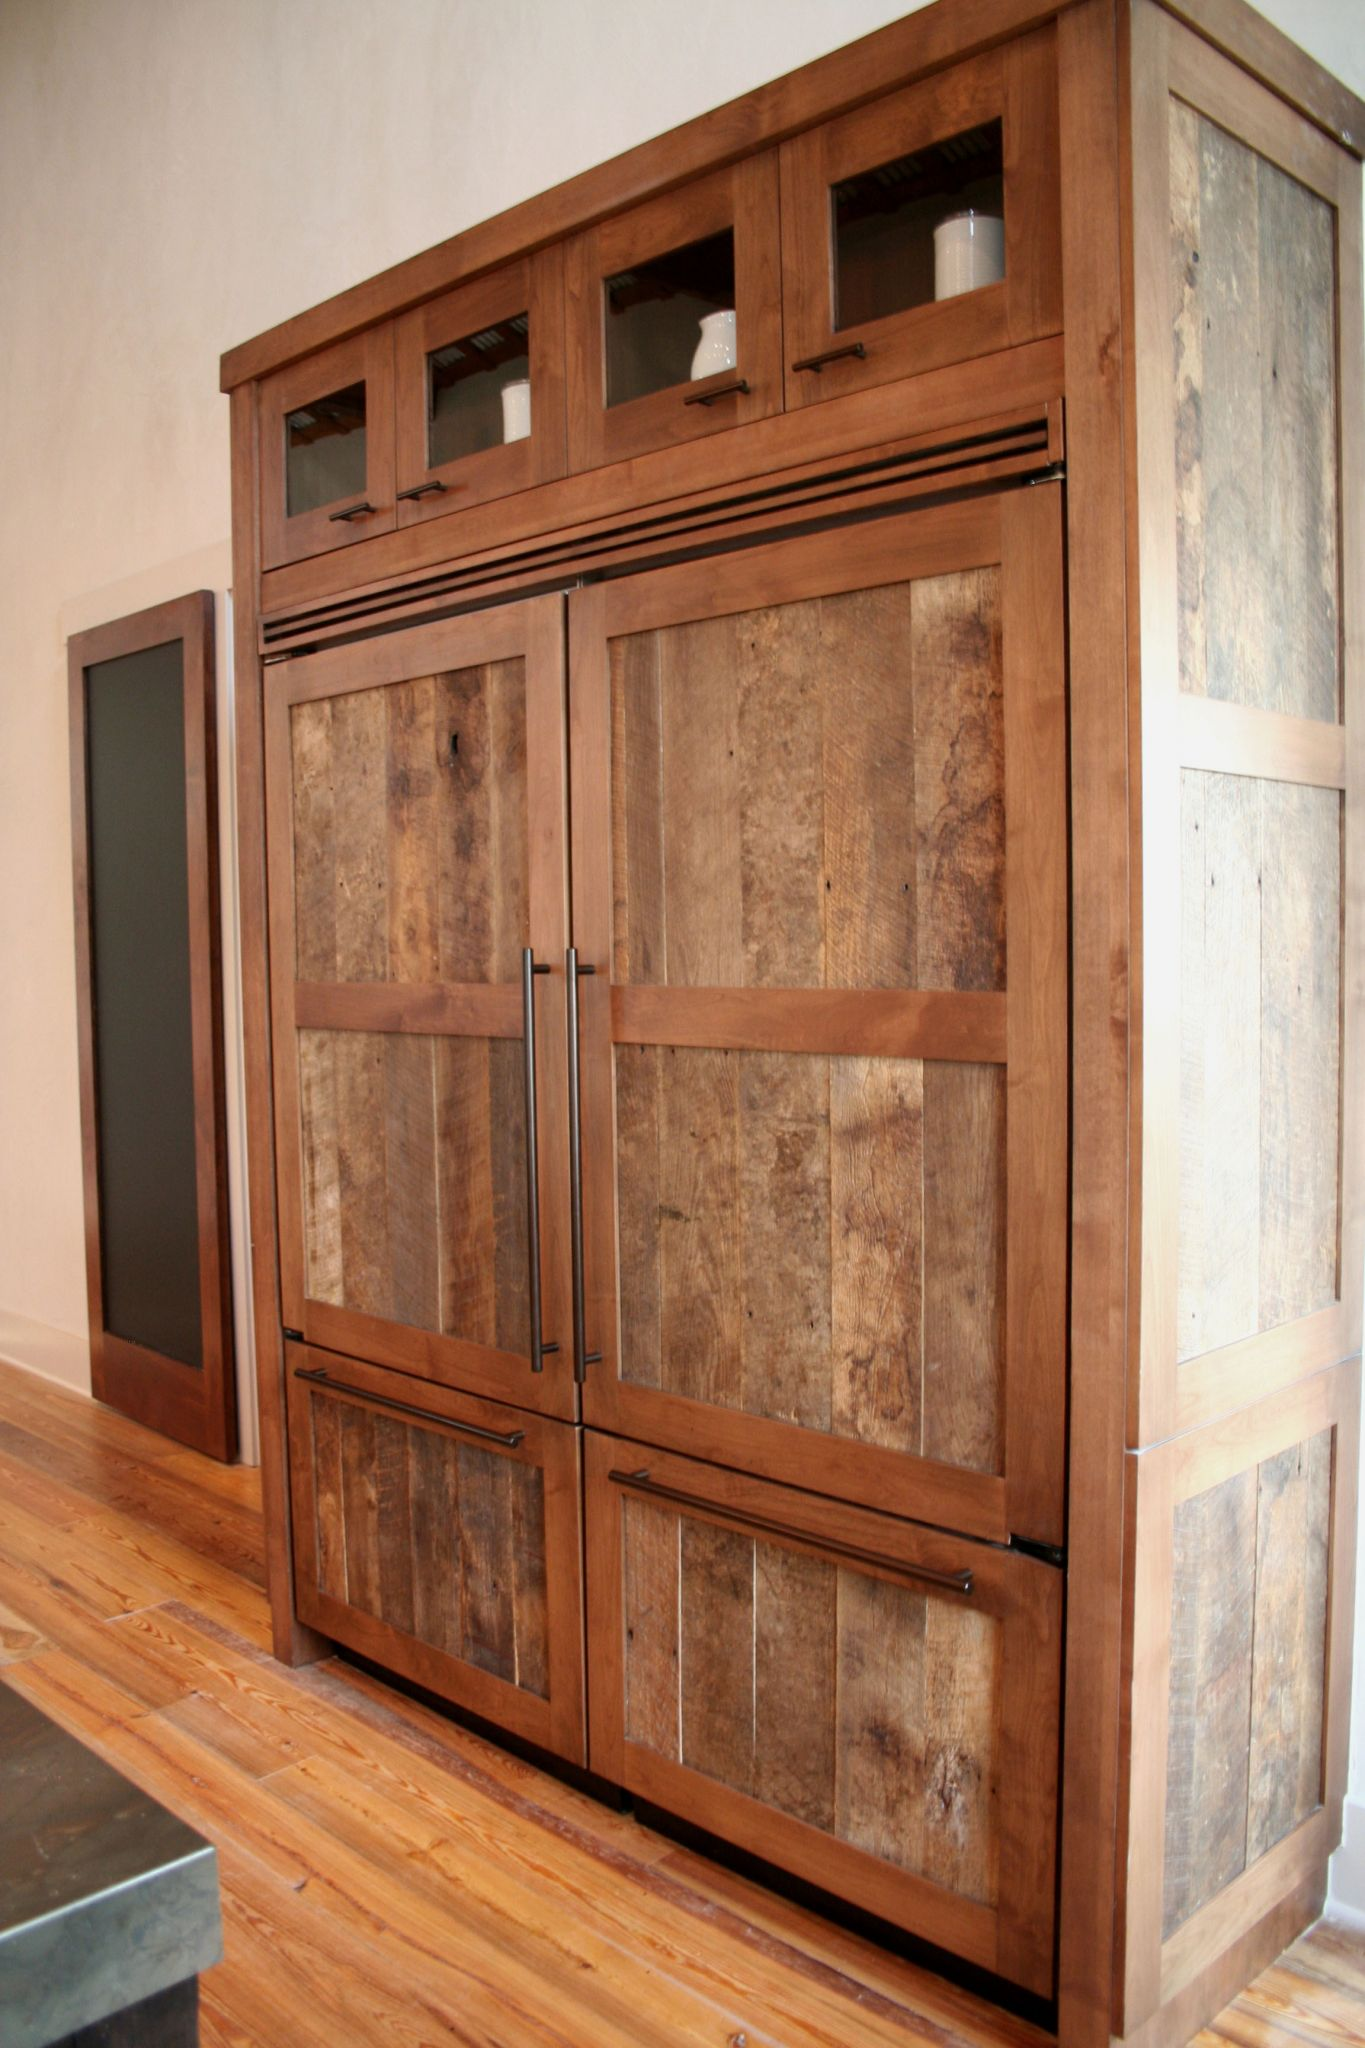 Reclaimed Wood Cabinets ~ Crystal kitchen cabinets bkc bath